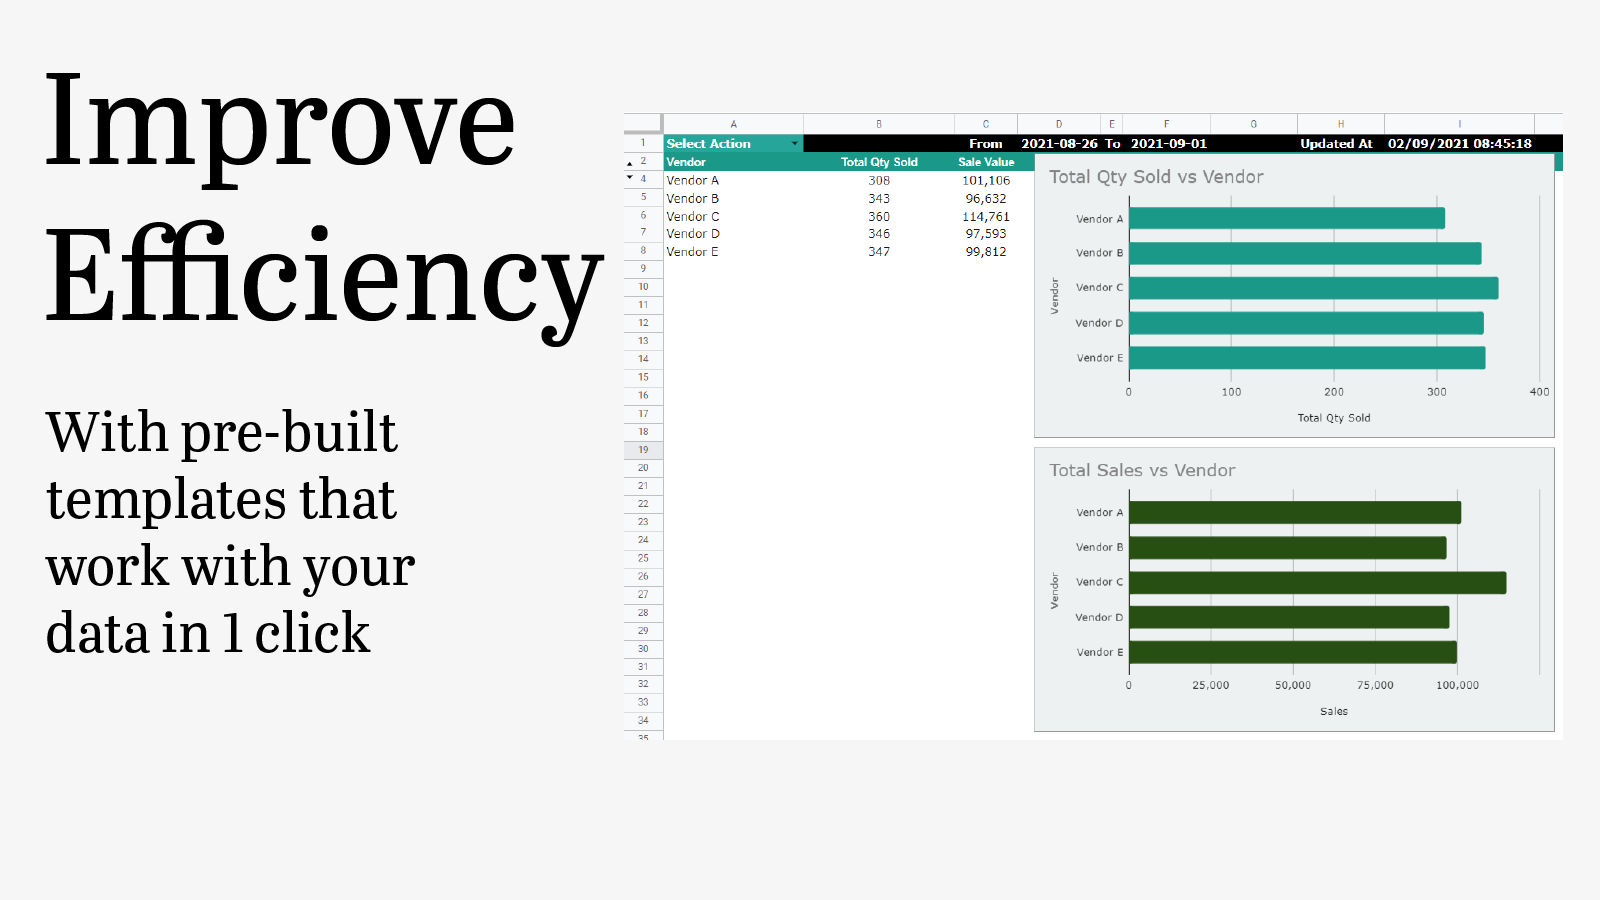 Improve efficiency with pre-built templates